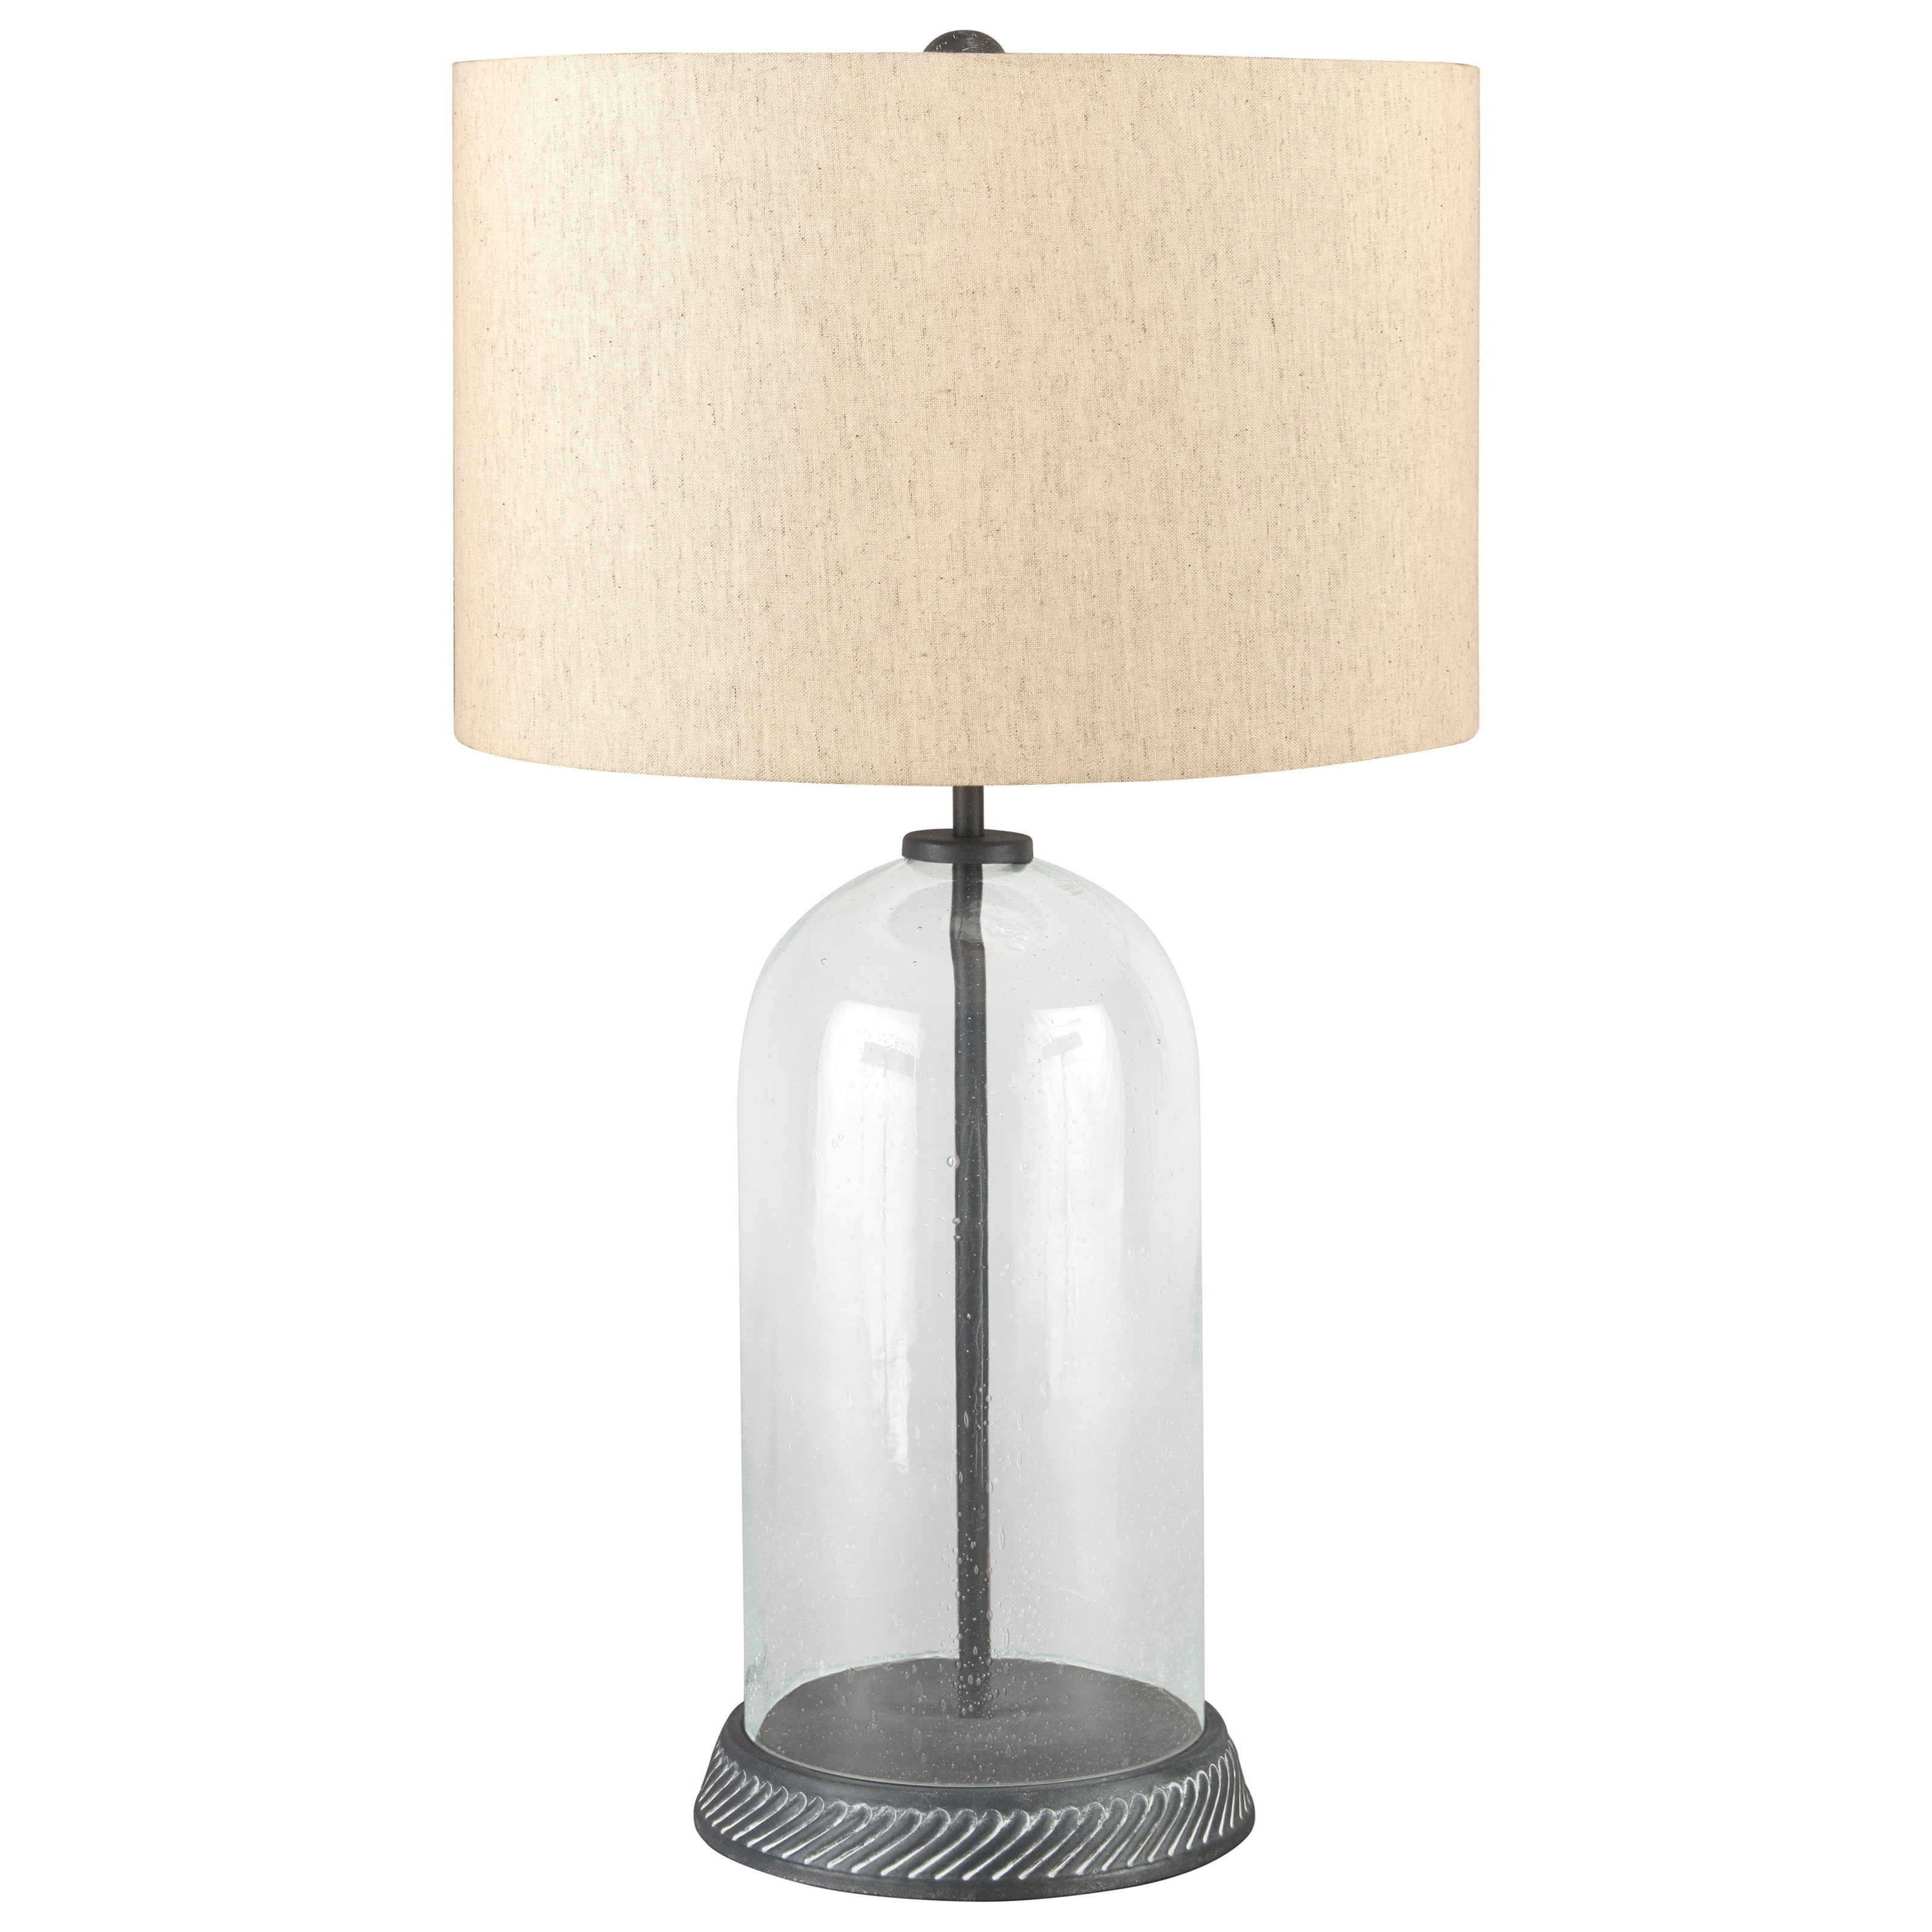 Manelin Clear/Gray Glass Table Lamp